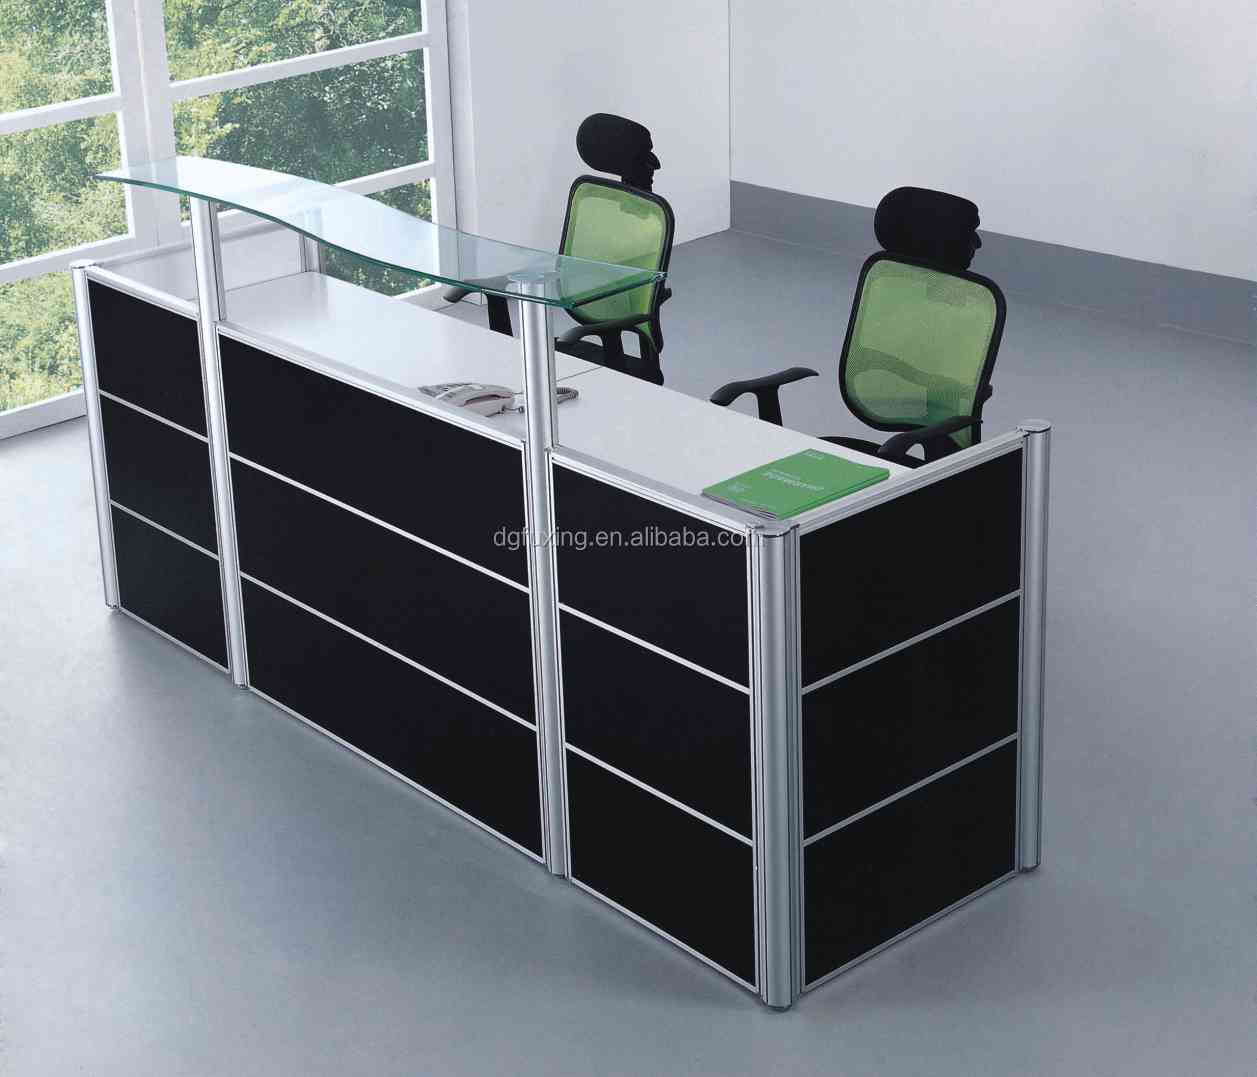 Sale Counter Design Fashionable High Bar Tables Half Round Reception Desk